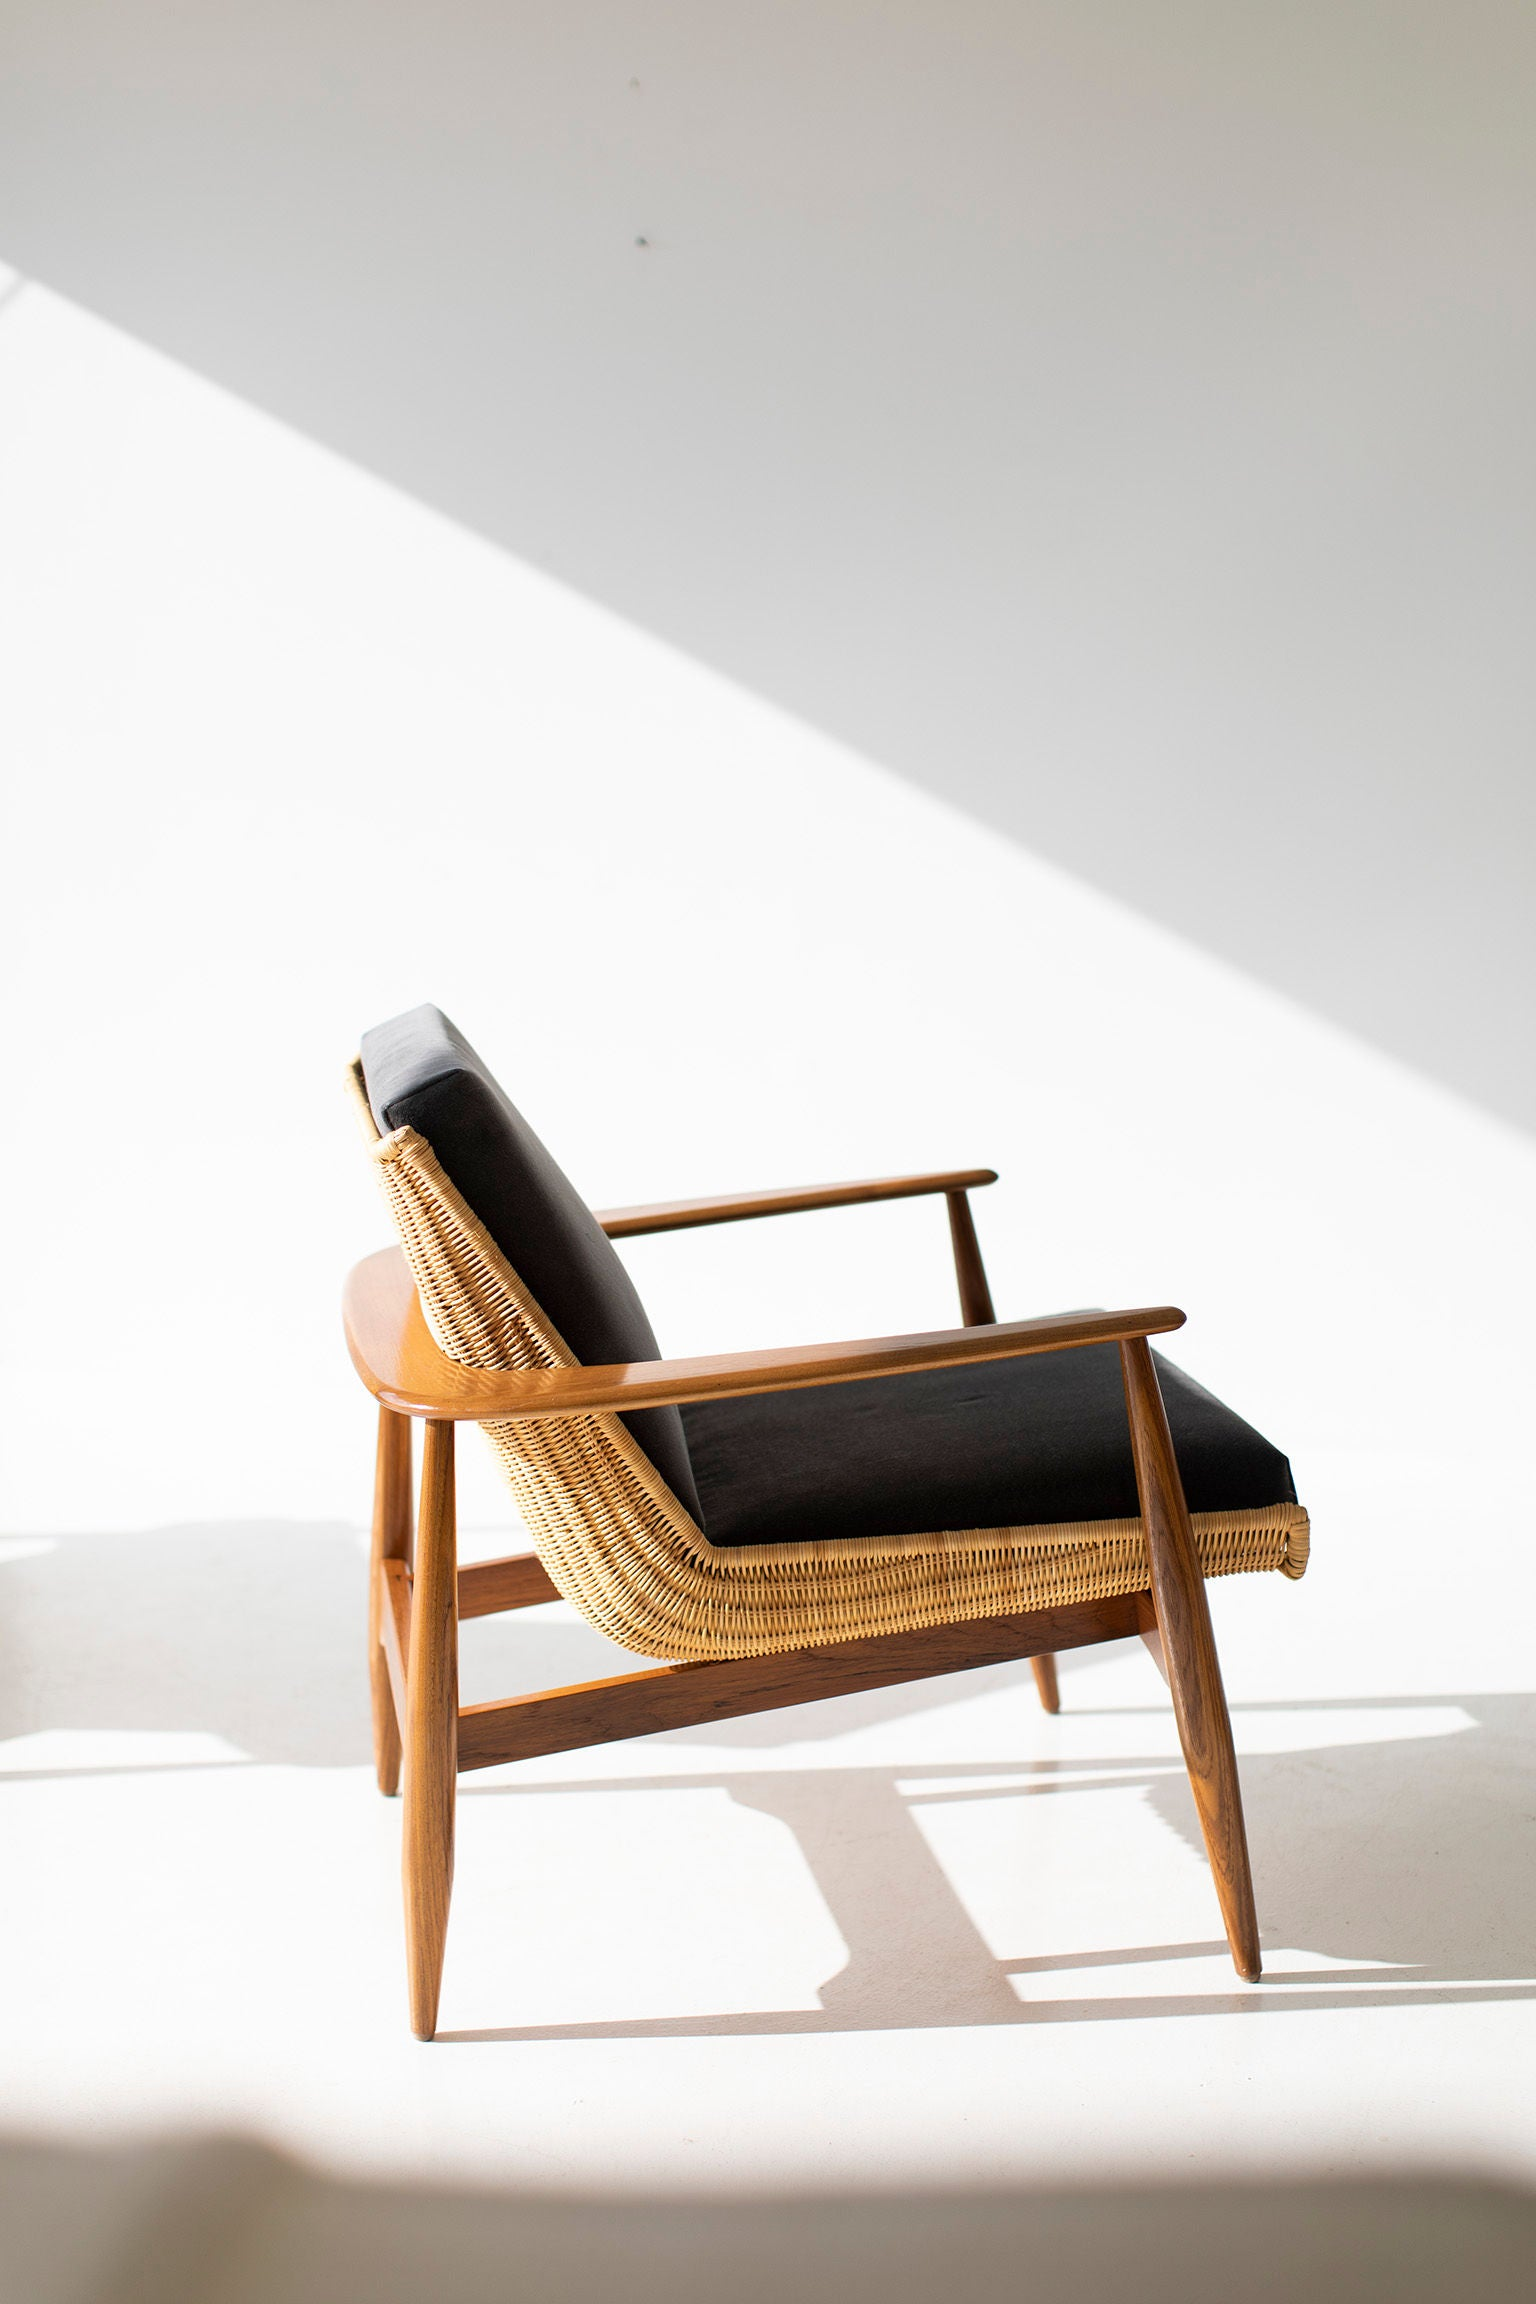 0T3A7022-lawrence-peabody-wicker-lounge-chairs-05